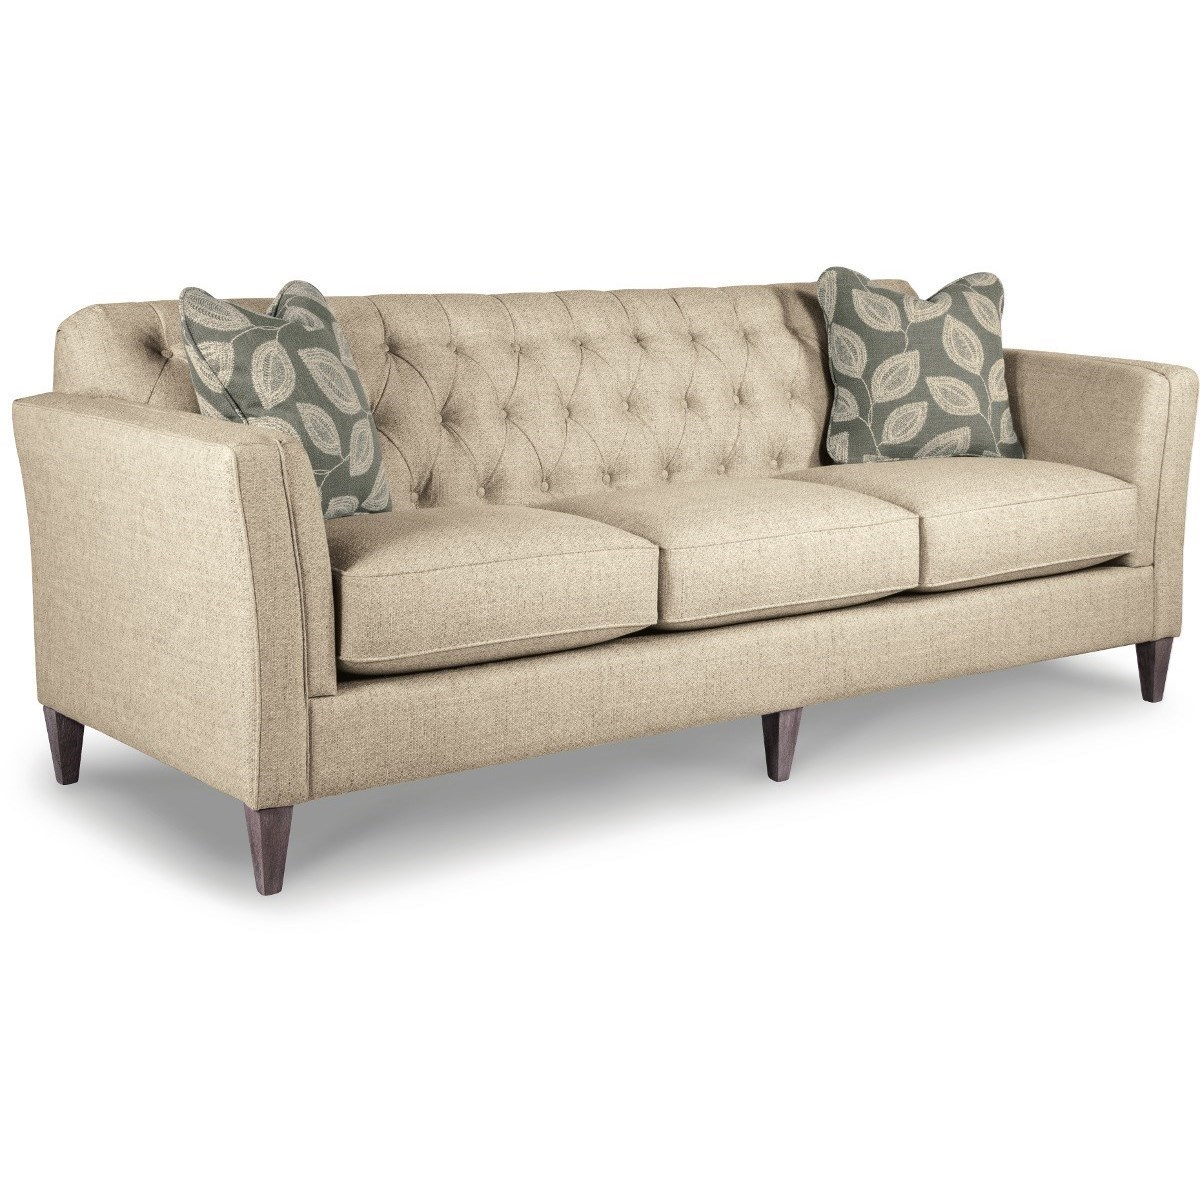 Sofa S La Z Boy Alexandria Transitional Premier Sofa With Chesterfield